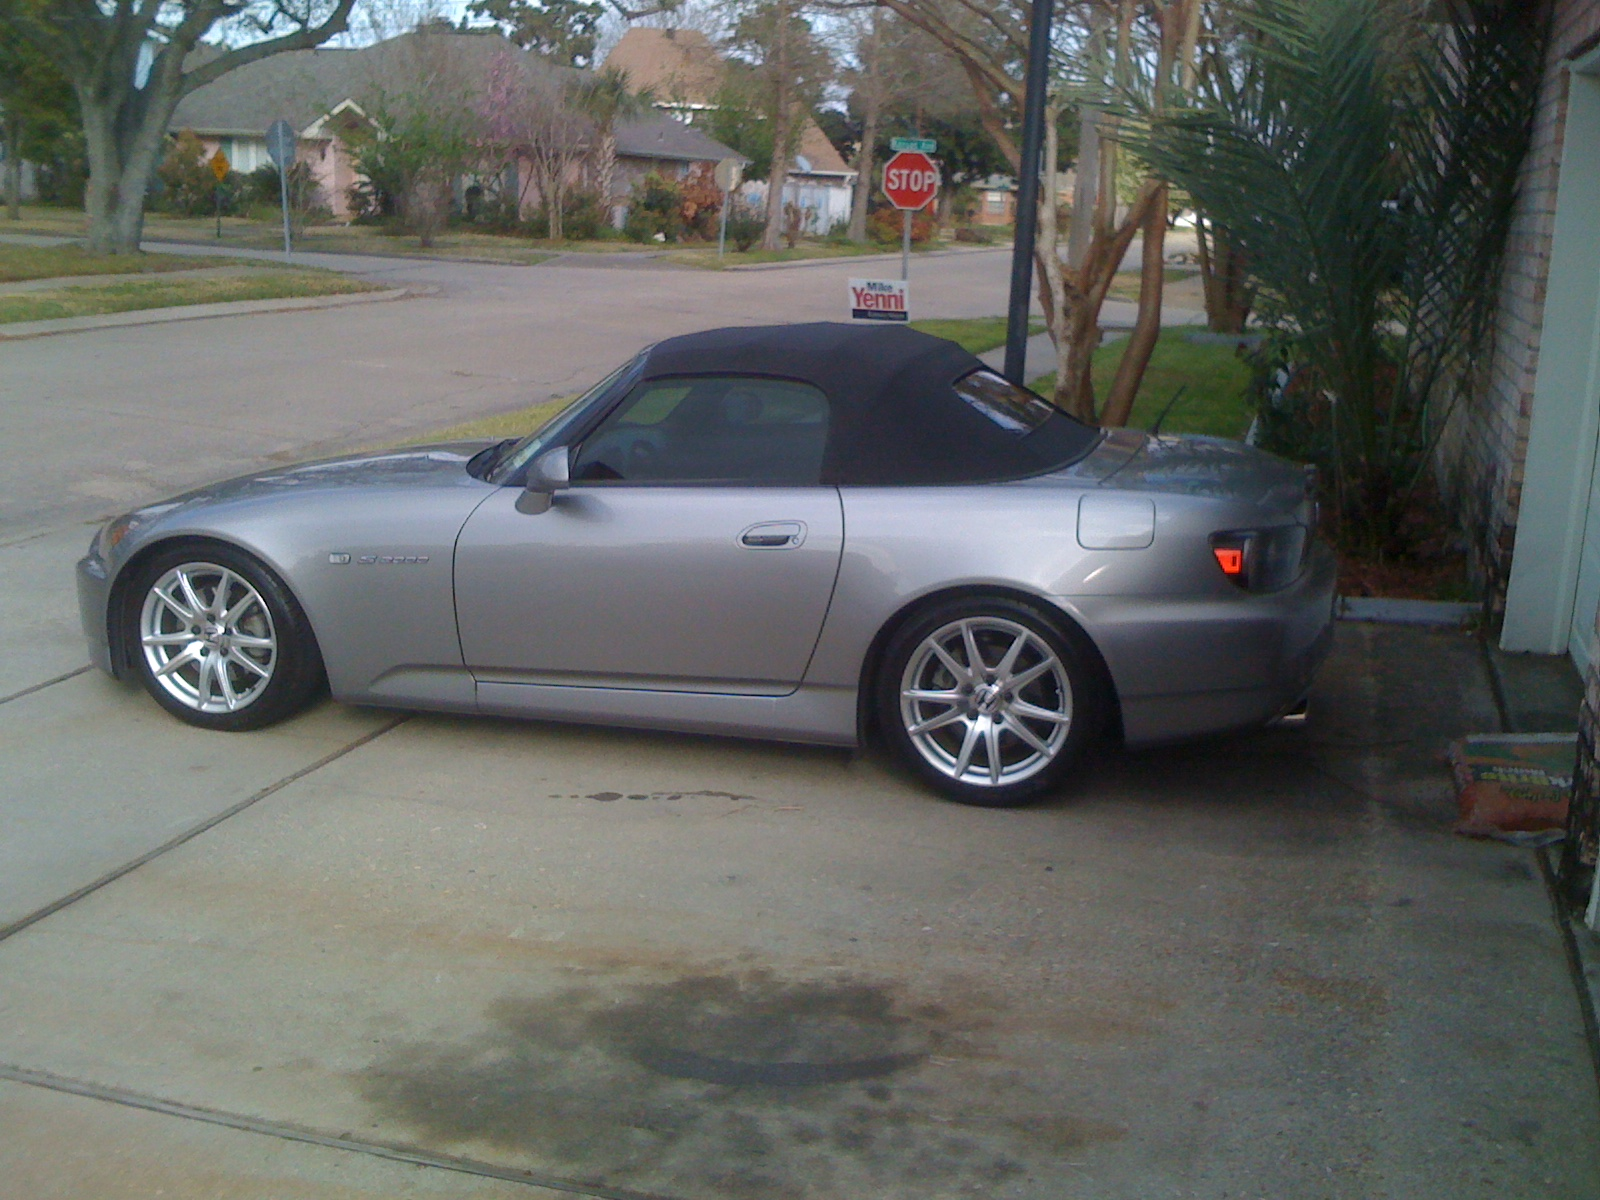 Tint who 39 s got it what percentage and where s2ki for 0 percent window tint